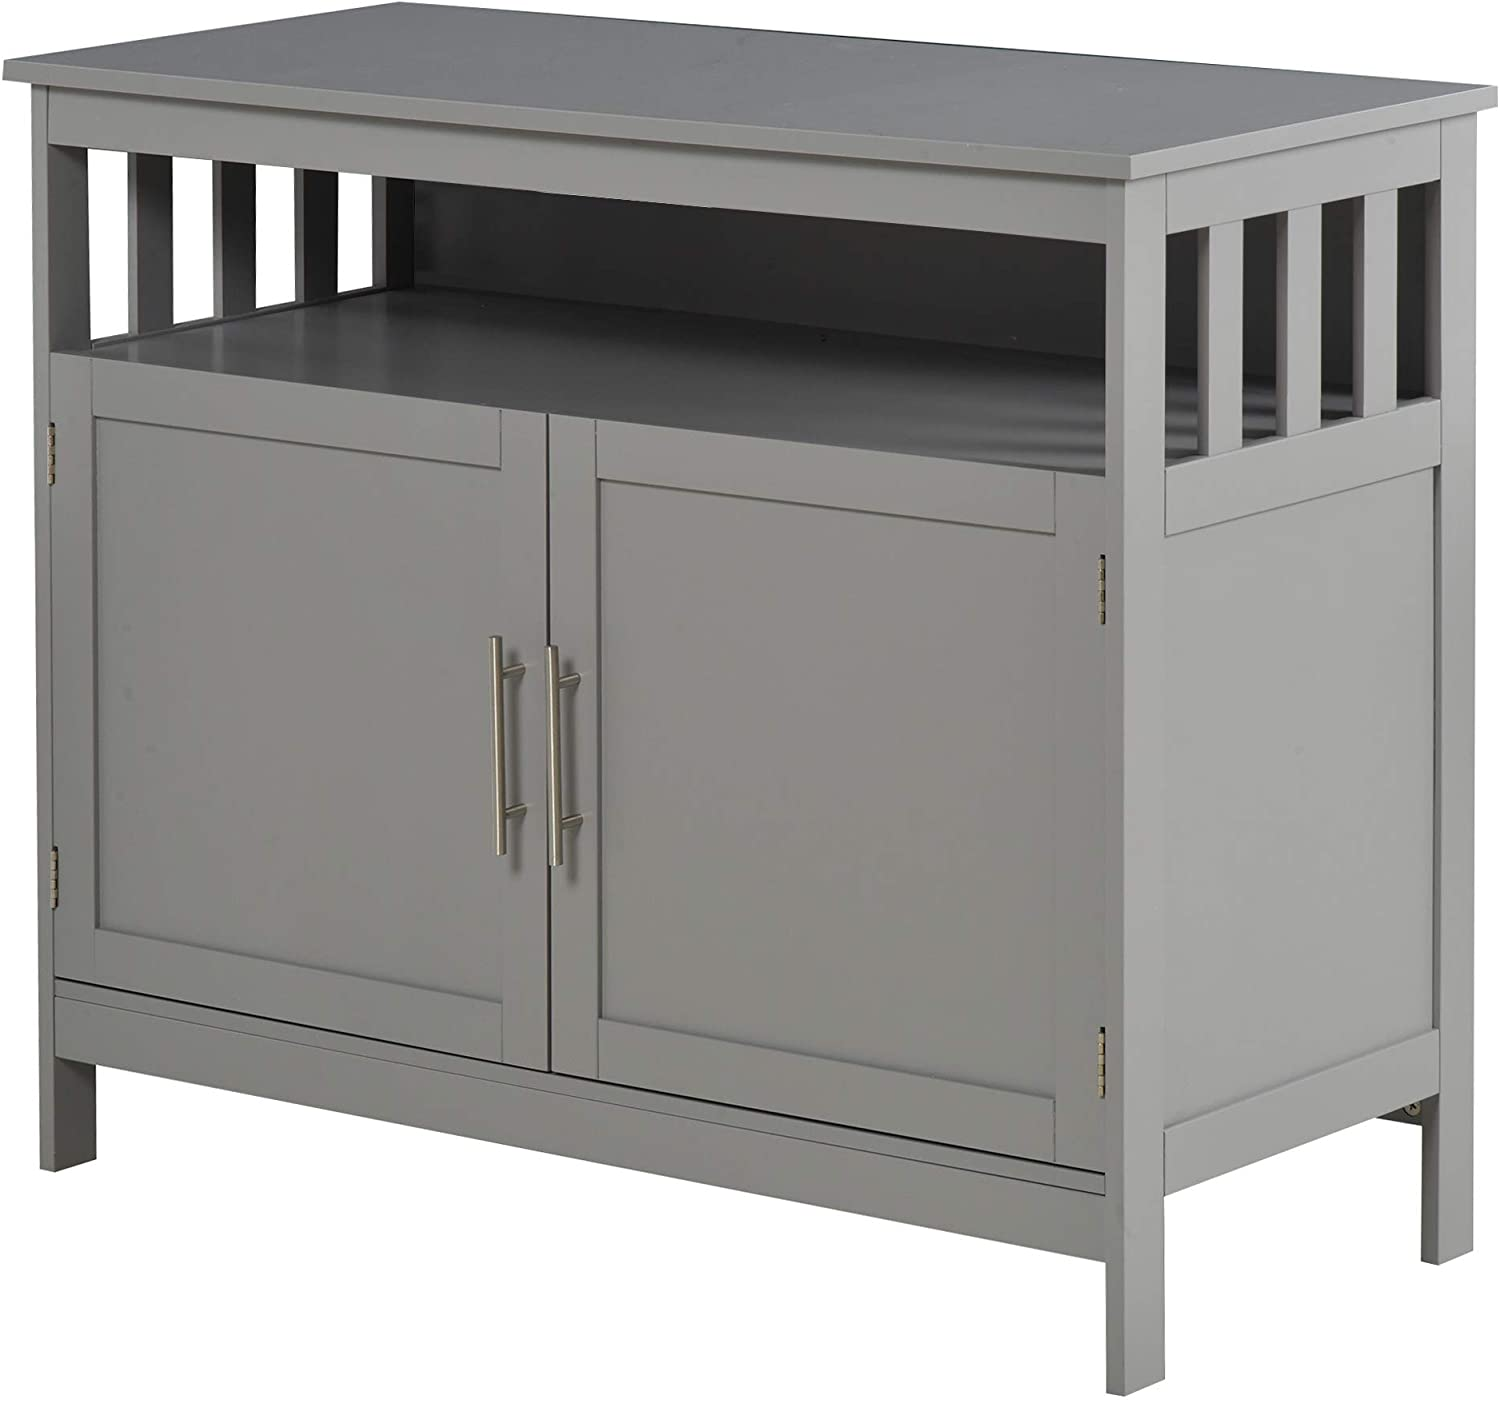 HOMCOM Kitchen Console Table, Buffet Sideboard, Wooden Storage Table with 2-Level Cabinet and Open Space, Grey